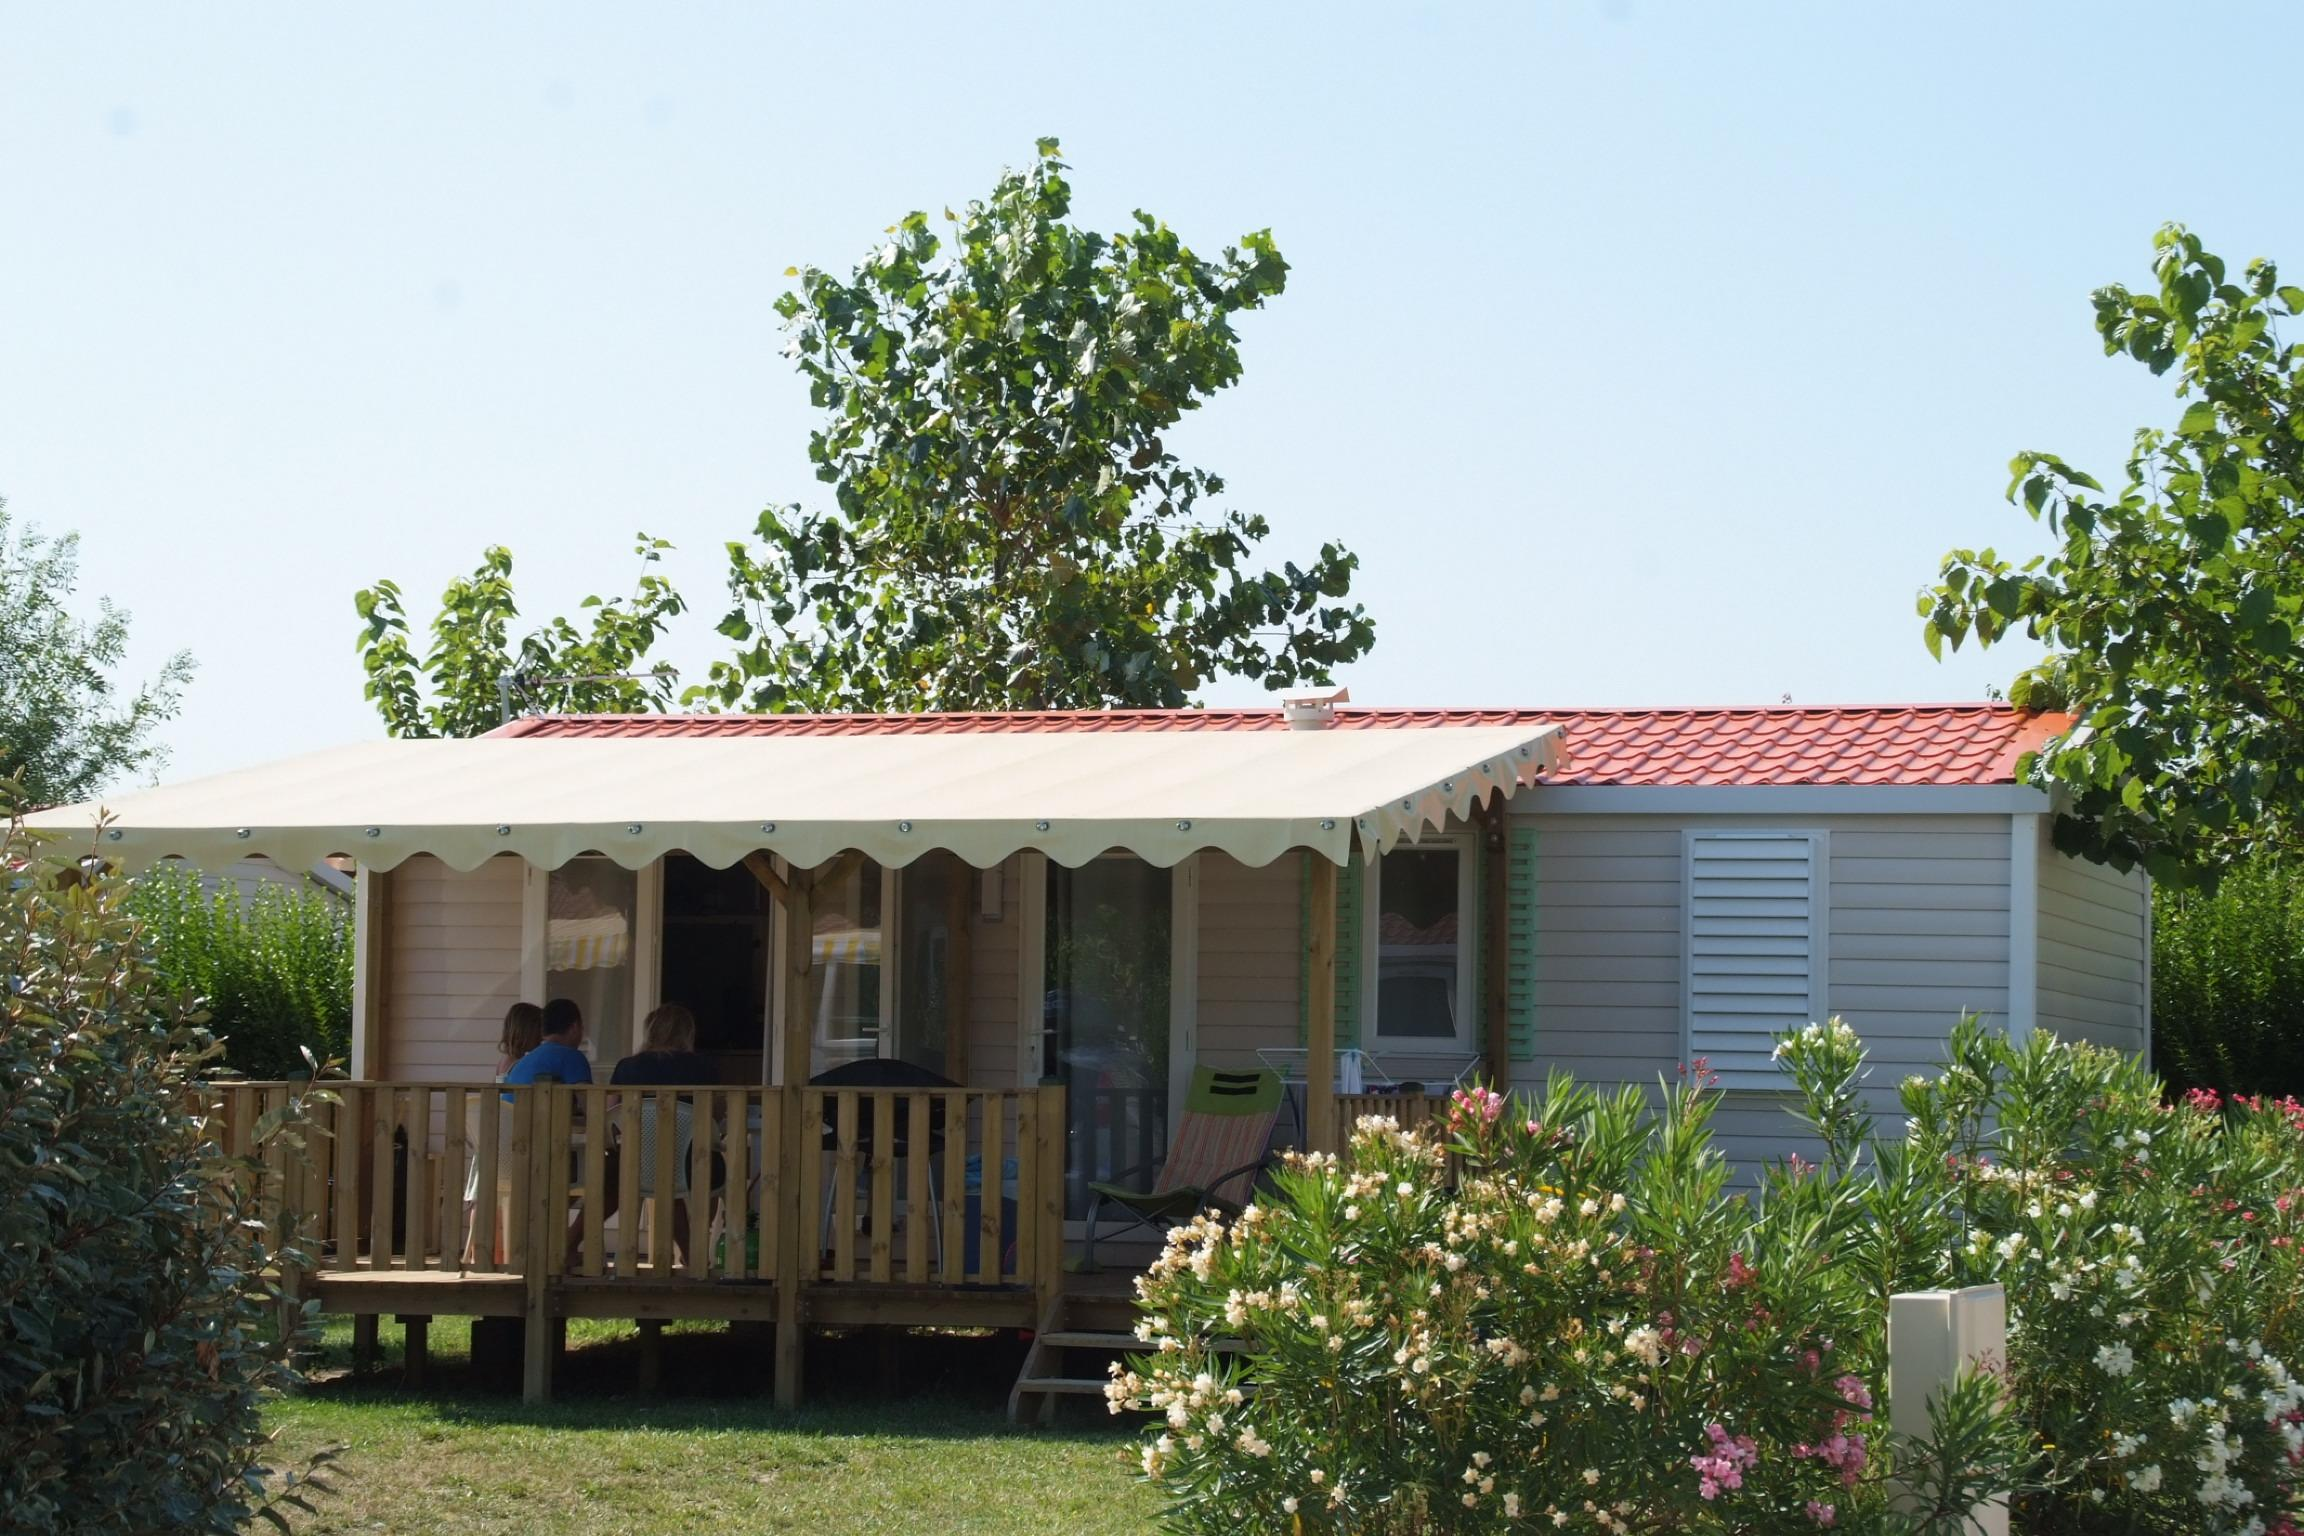 Accommodation - Mobile Home Family 3 Bedrooms (Year 2012) - Camping Le Soleil Fruité